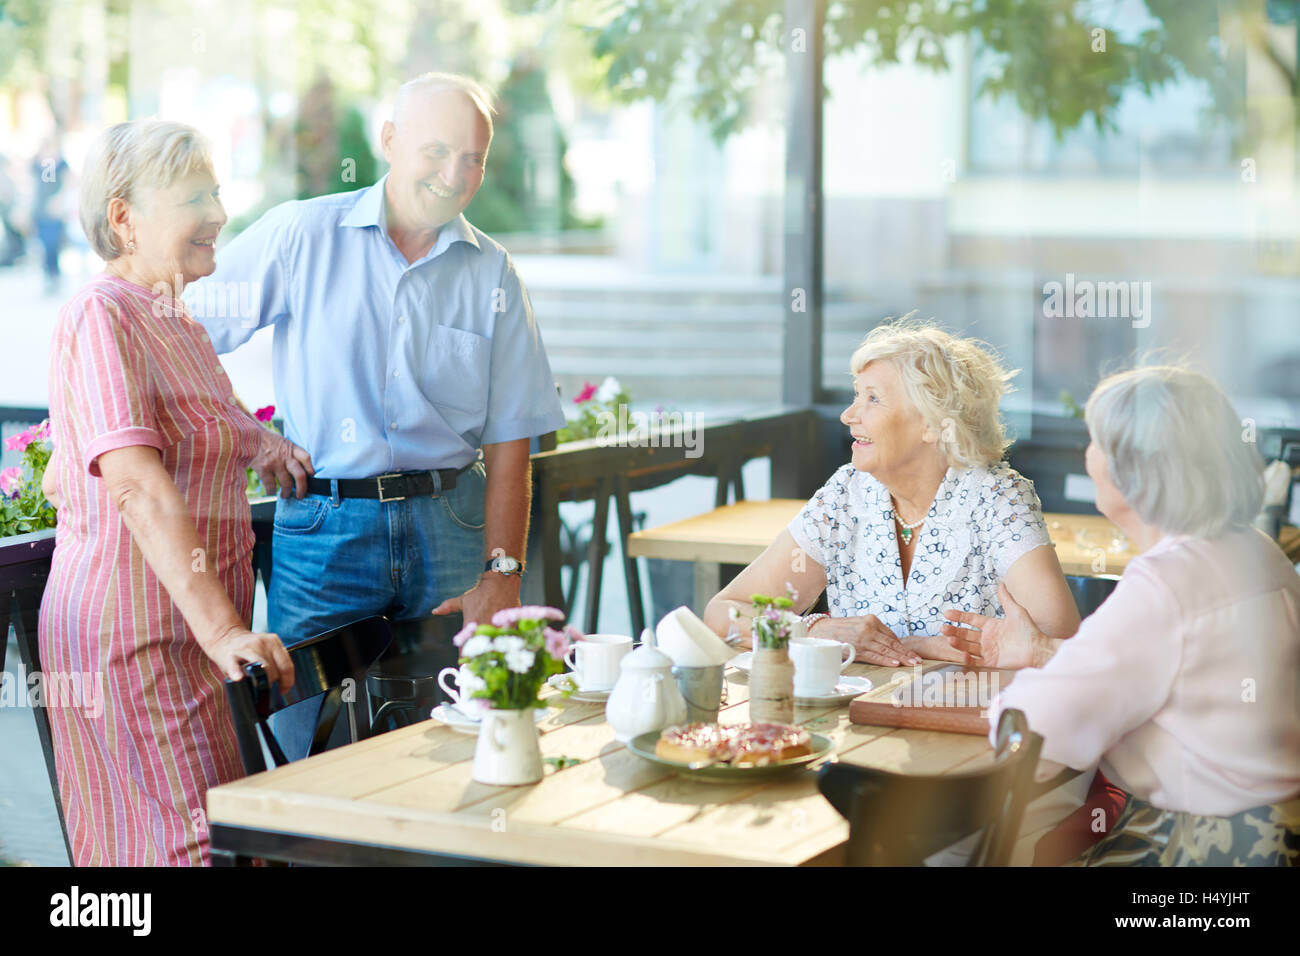 Carefree seniors having nice time in cafe - Stock Image